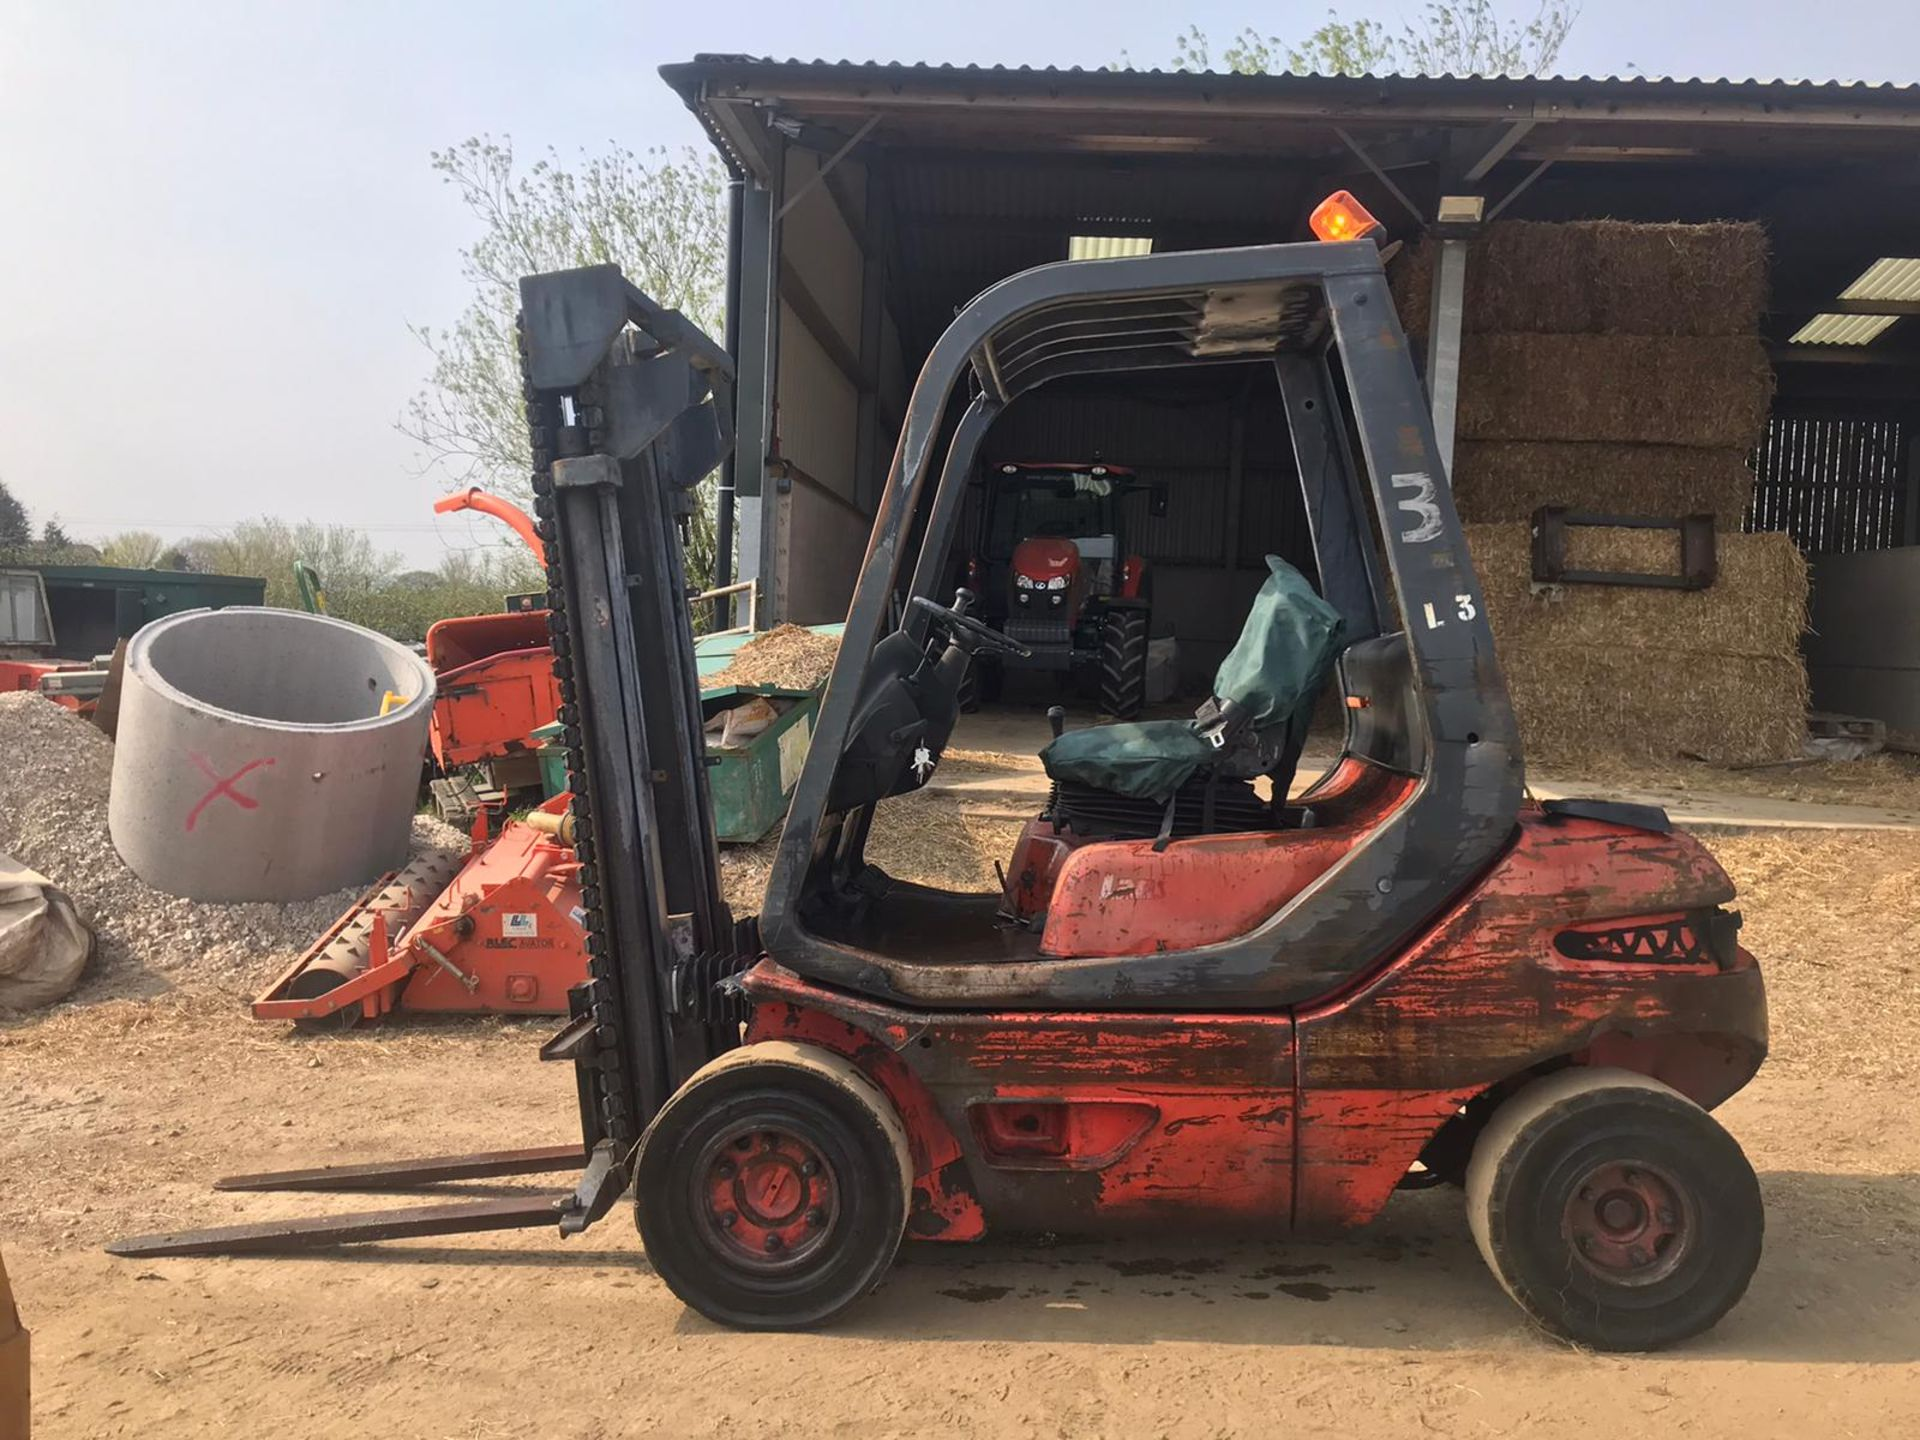 Lot 152 - 1994 LINDE LANSING FORKLIFT, RUNS, DRIVES AND LIFTS, 360 HOURS *PLUS VAT*